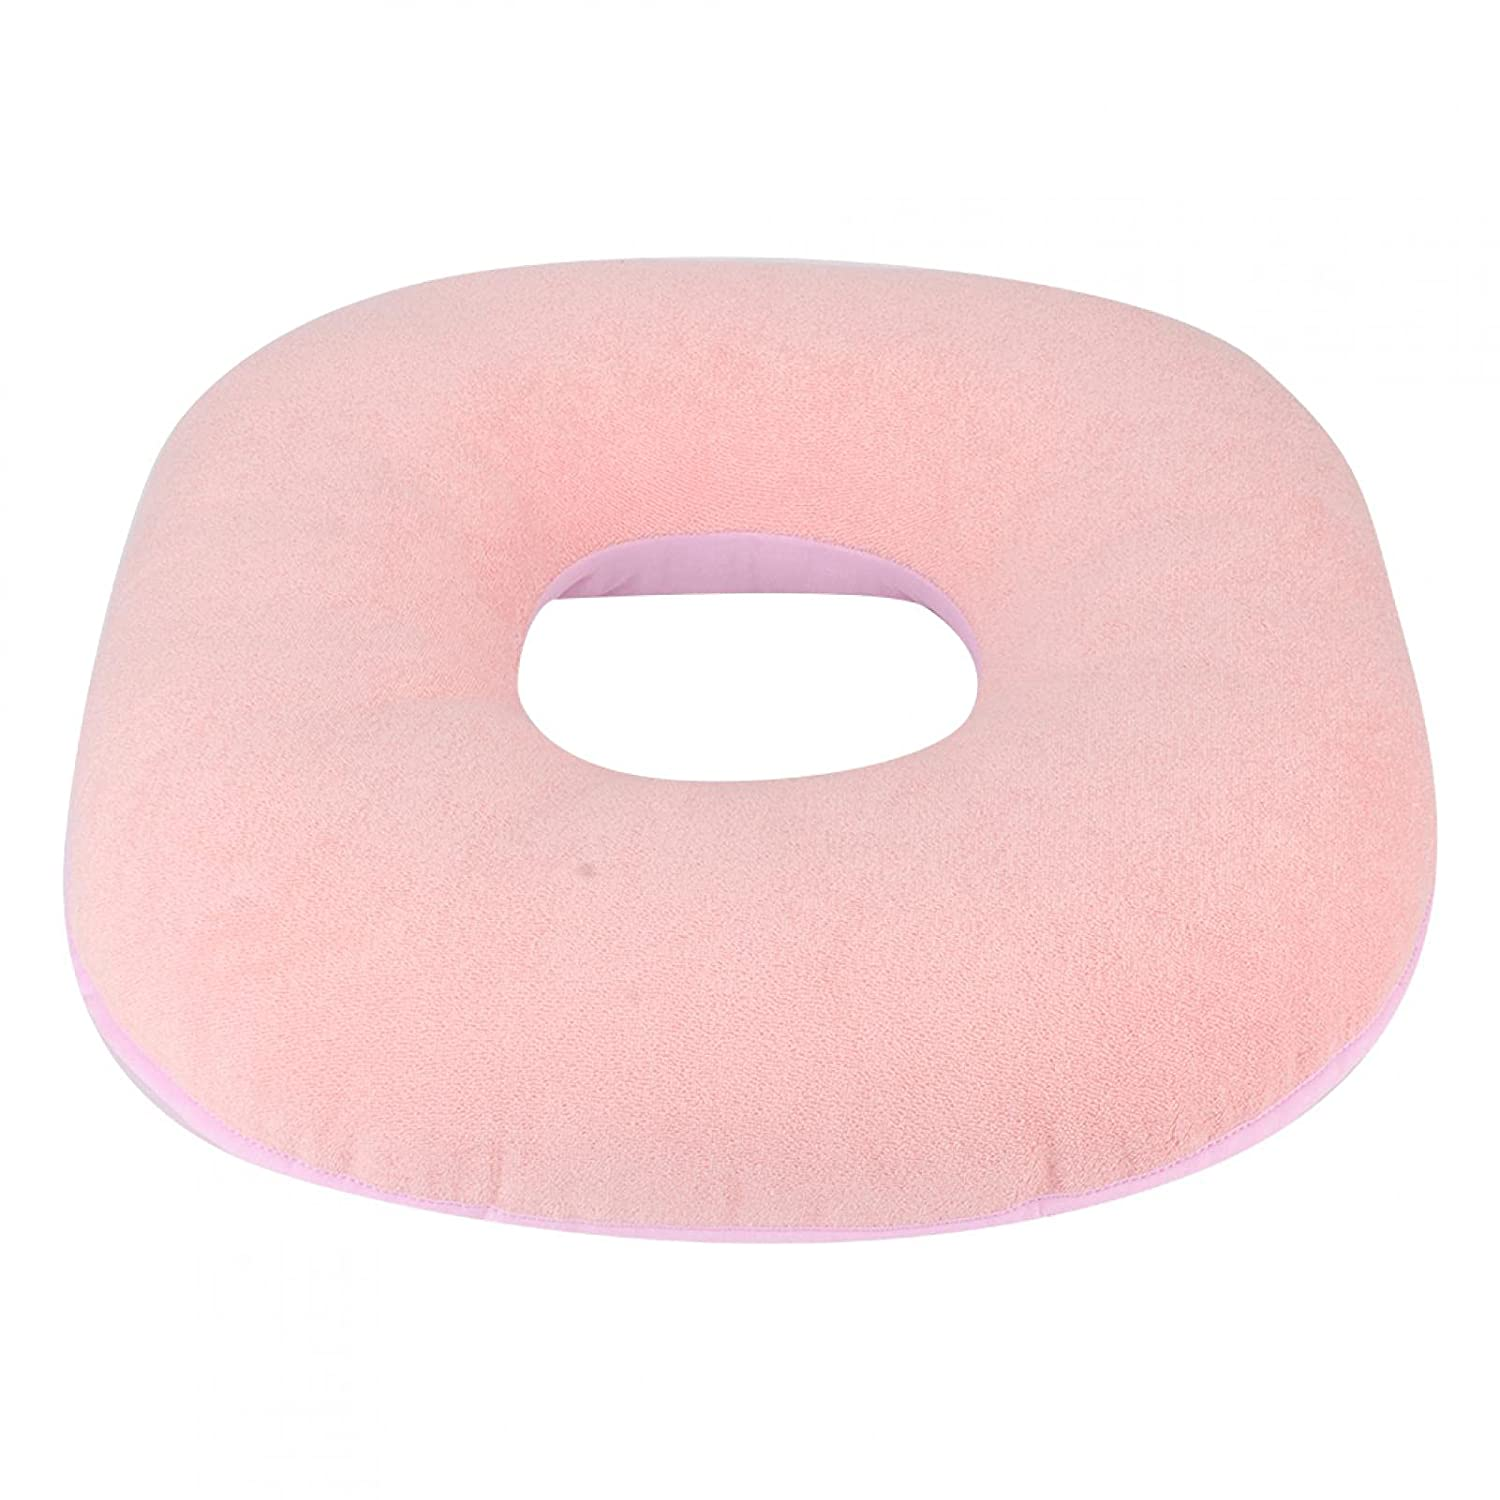 Anti-Bedsore Cushion Brand new Large-scale sale Round Rubber Superior Cushio Seat